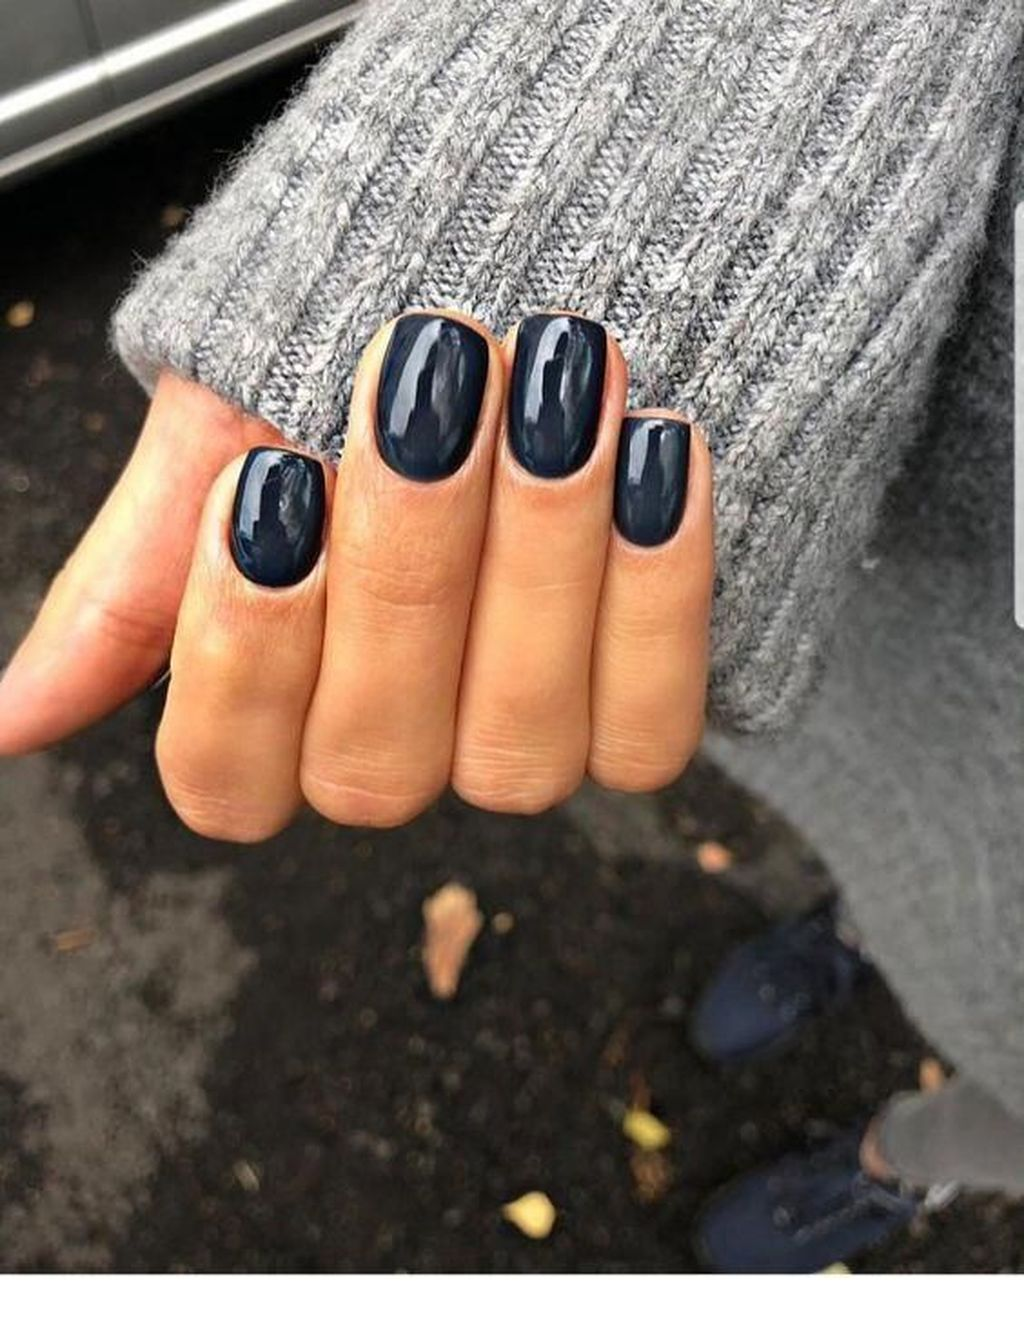 30+ Classy Nails Art Design That Ready For Fall - OUTFITS4YOU